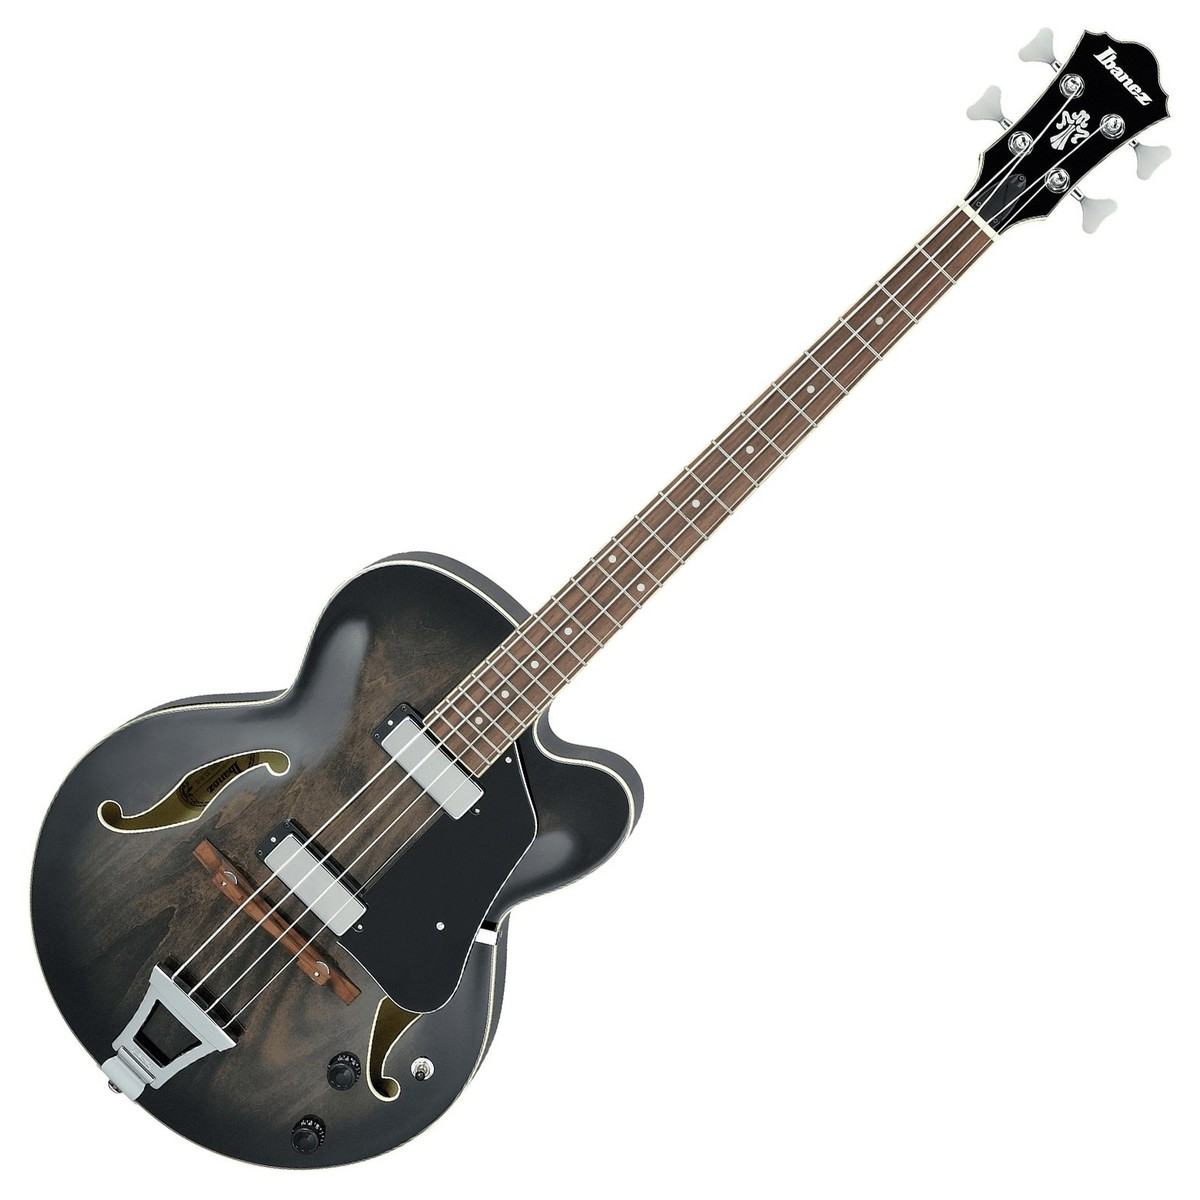 ibanez afb200 artcore bass trans black at gear4music. Black Bedroom Furniture Sets. Home Design Ideas